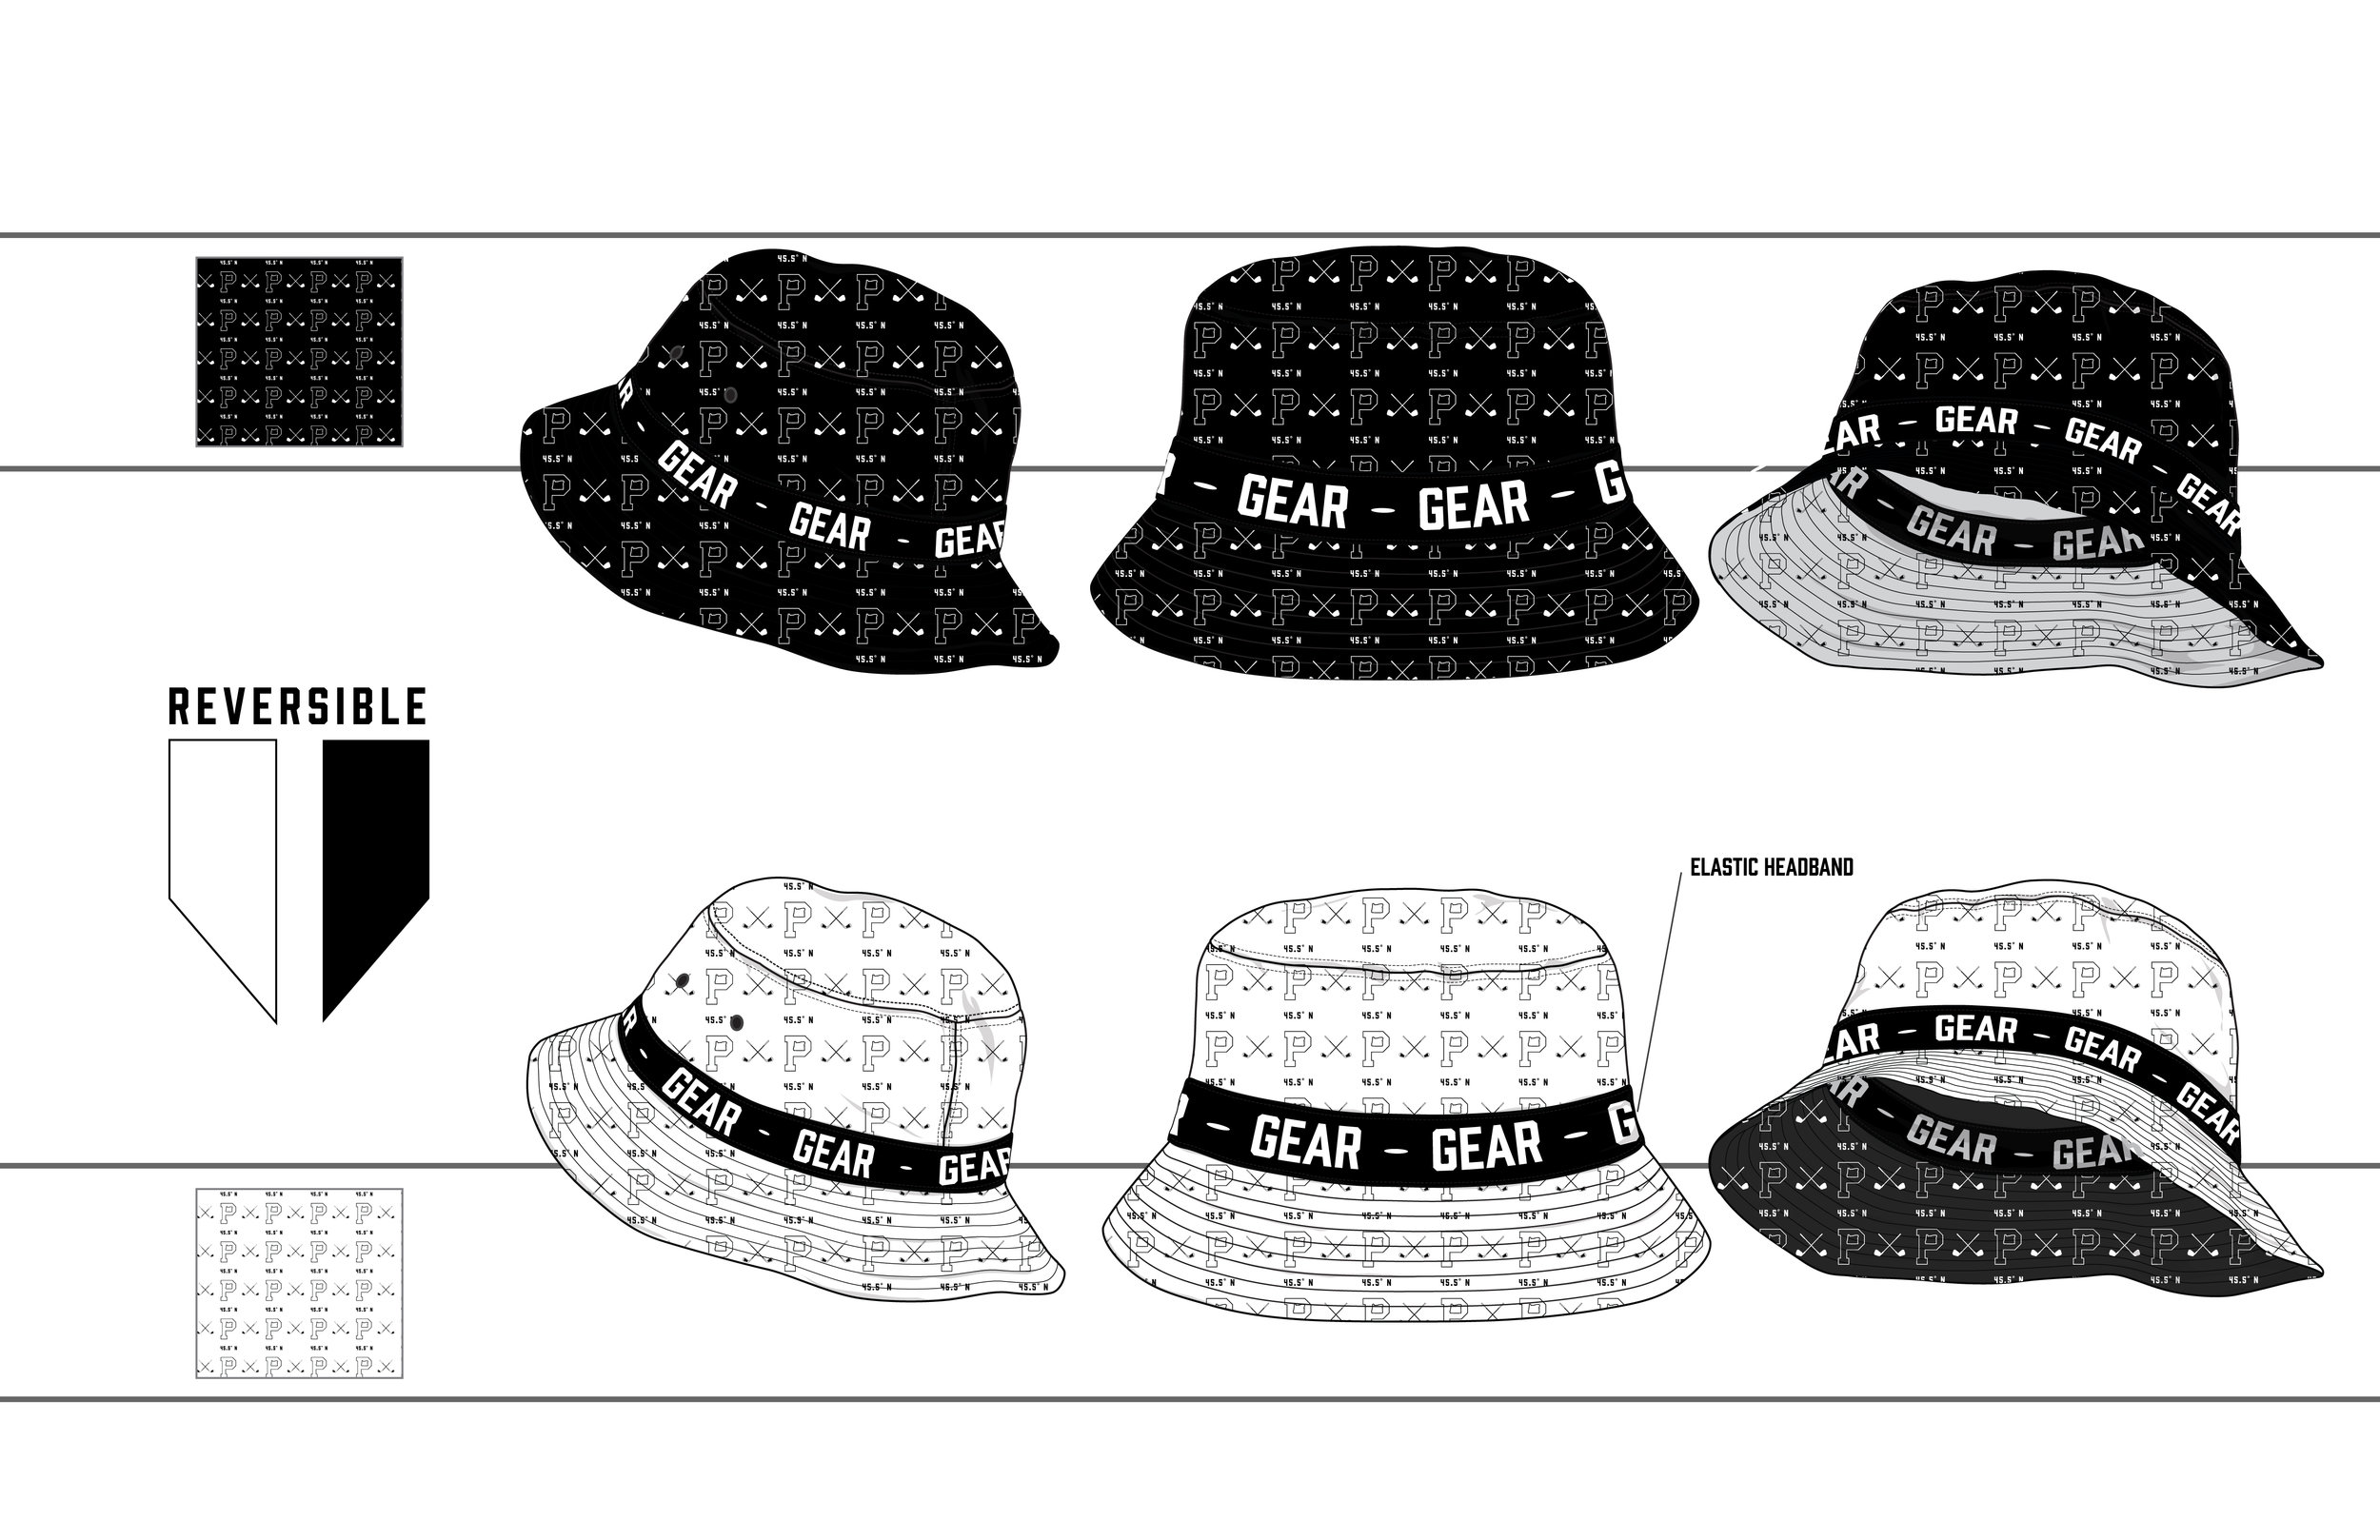 Marko_Kevin_PG_Project_PG - Bucket Hat.jpg